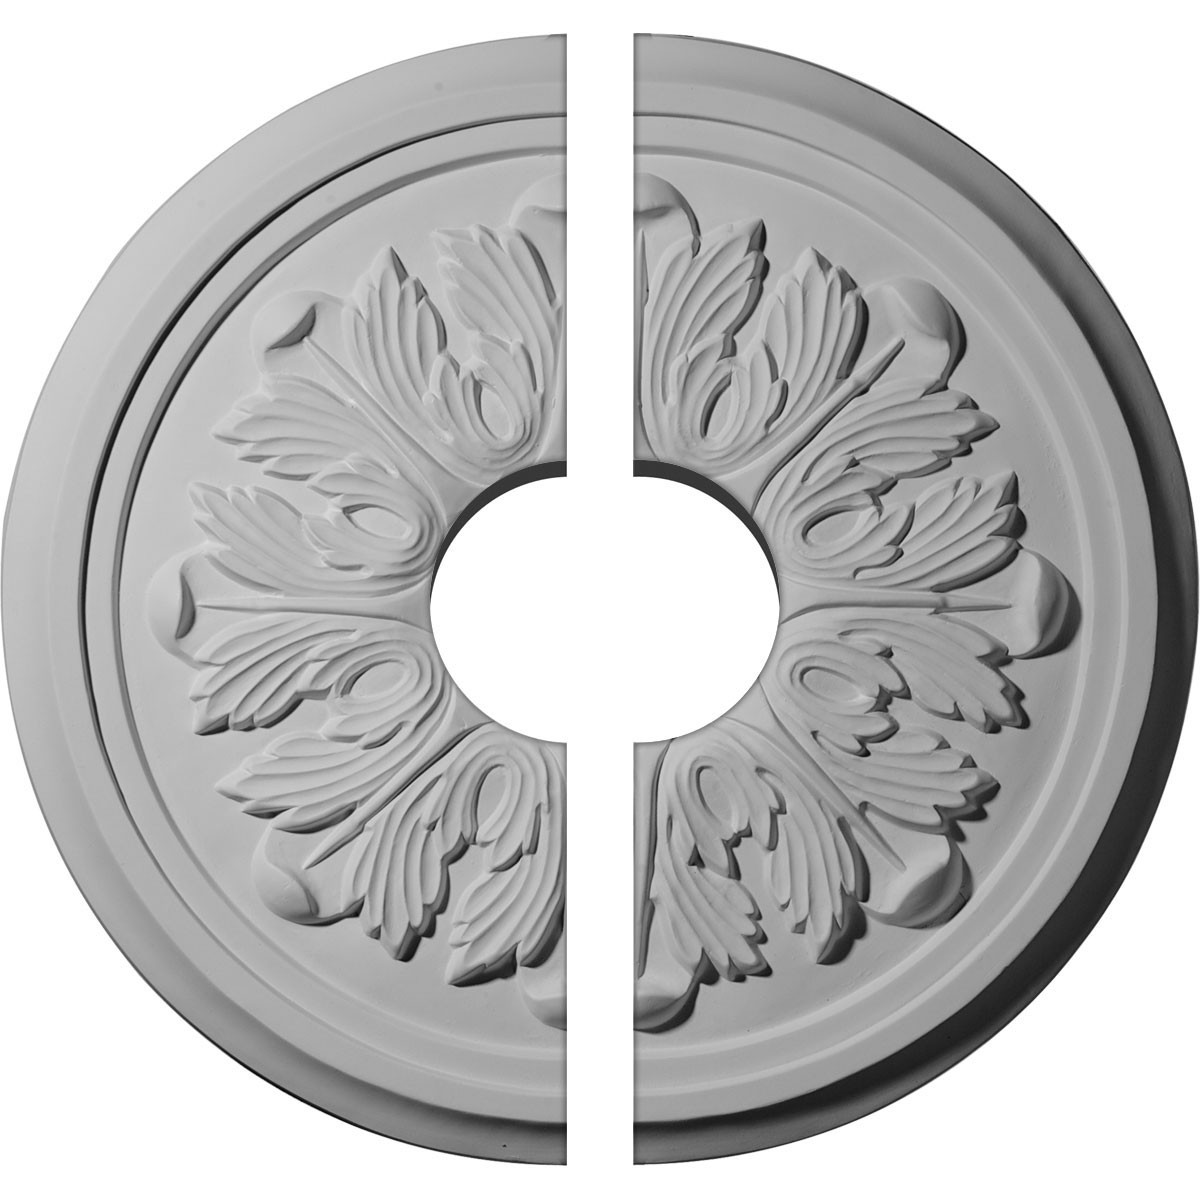 "EM-CM17LE2-03500 - 17 7/8""OD x 3 1/2""ID x 1 1/8""P Large Legacy Acanthus Ceiling Medallion, Two Piece (Fits Canopies up to 4 1/4"")"